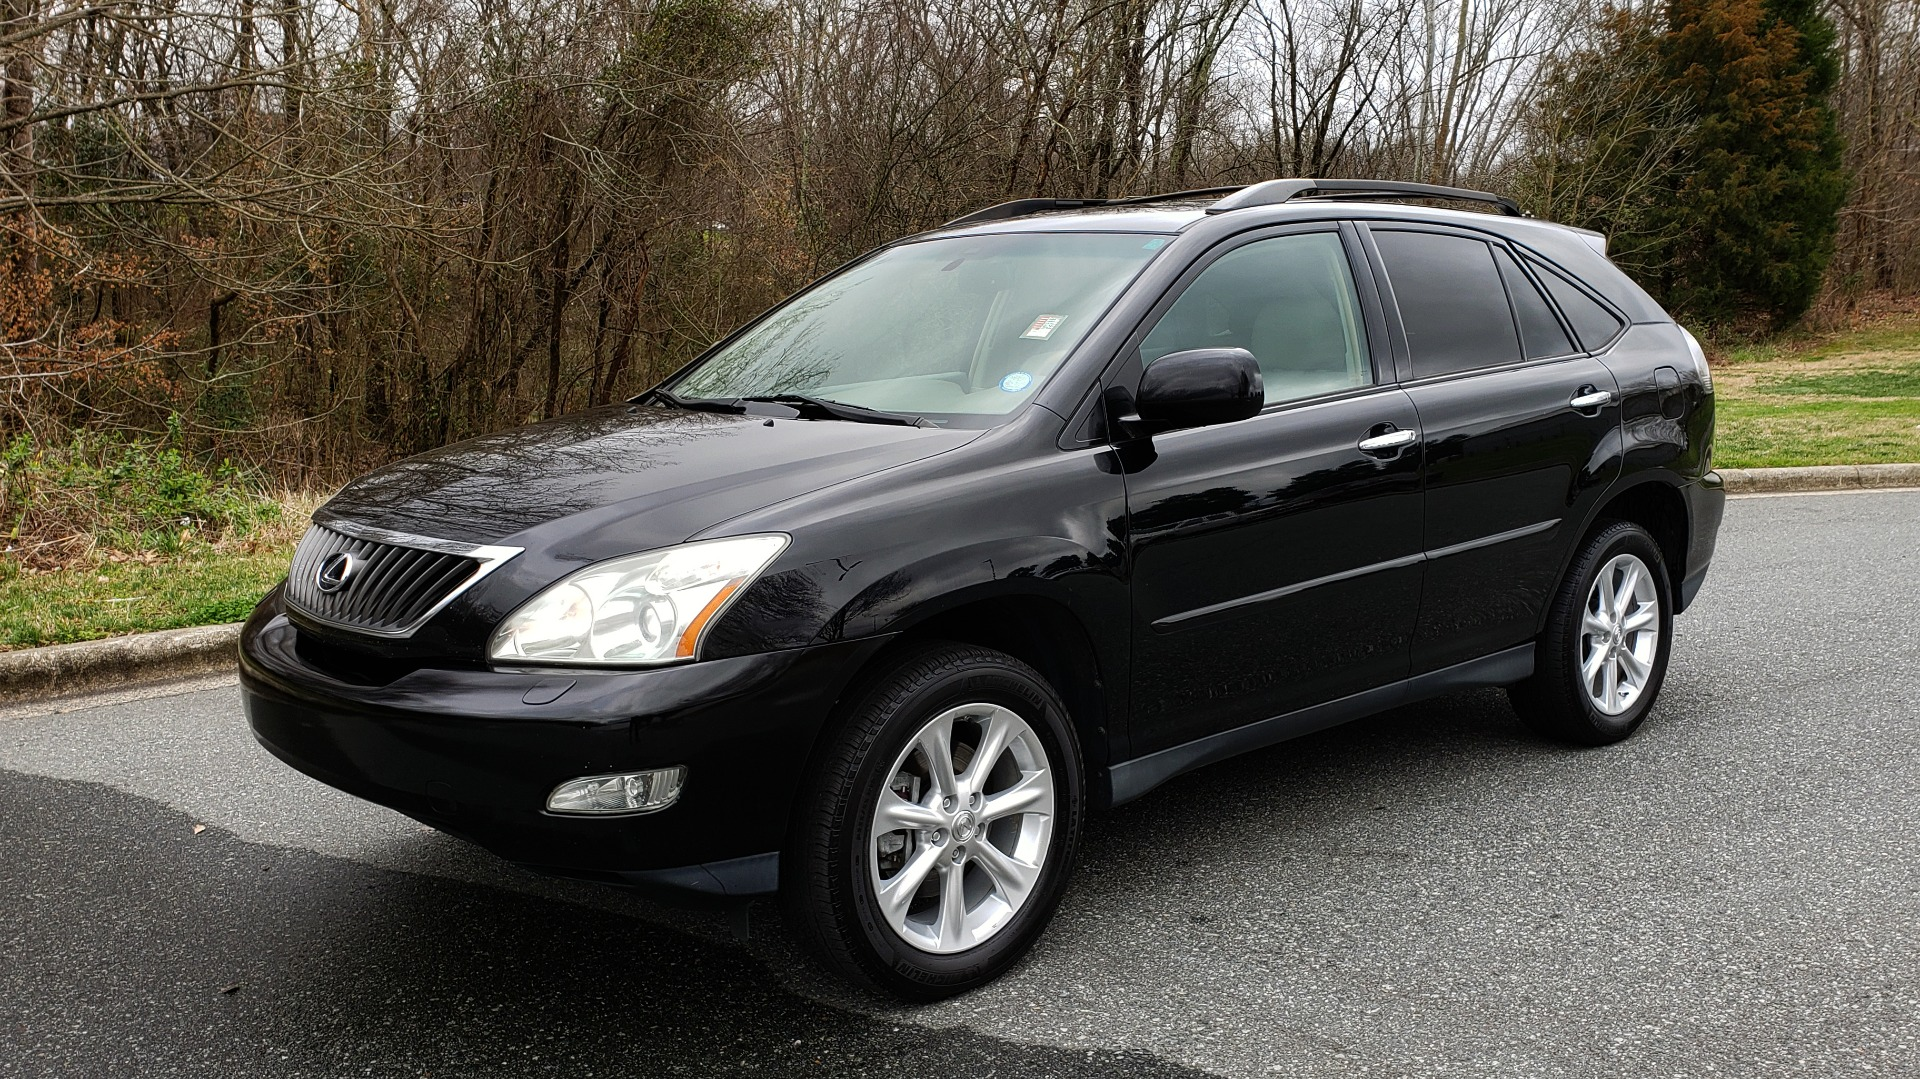 Used 2008 Lexus RX 350 LUXURY EDITION / NAV / SUNROOF / REARVIEW for sale Sold at Formula Imports in Charlotte NC 28227 1